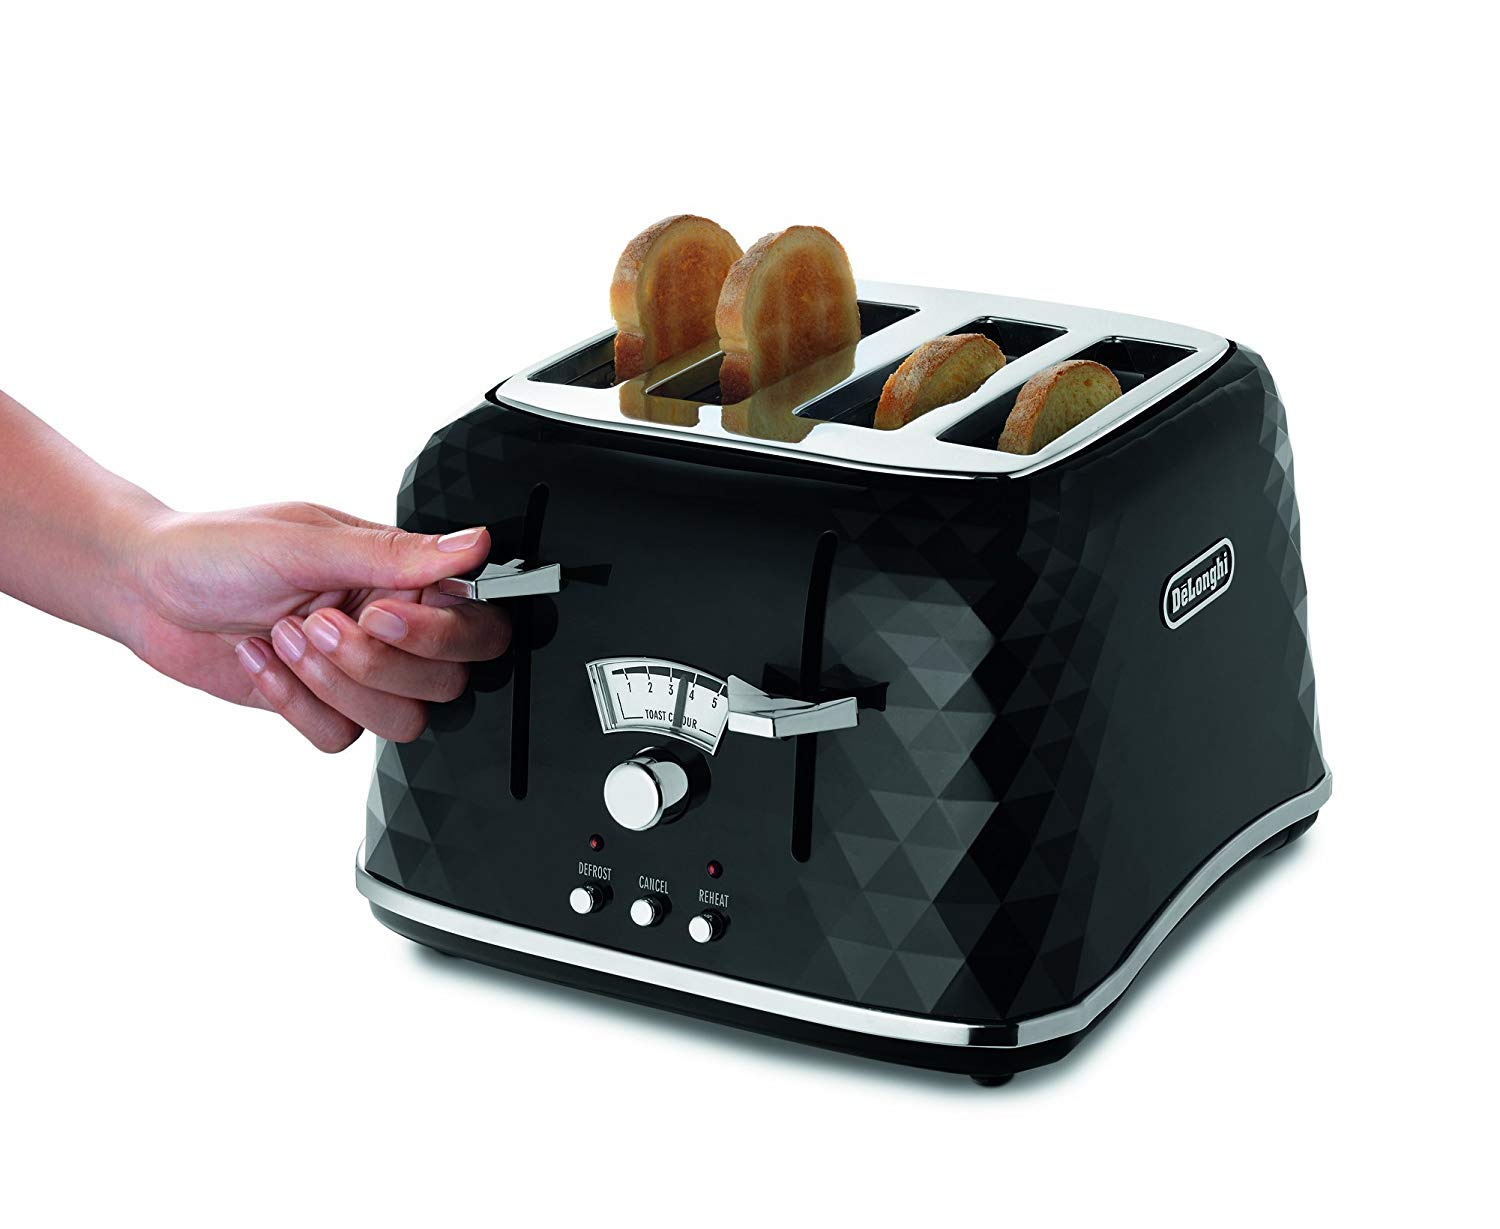 220-240 Hz 50-60 Hz, Delonghi CTJ4003.BK Brillante Toaster, FOR OVERSEAS USE ONLY, WILL NOT WORK IN THE US